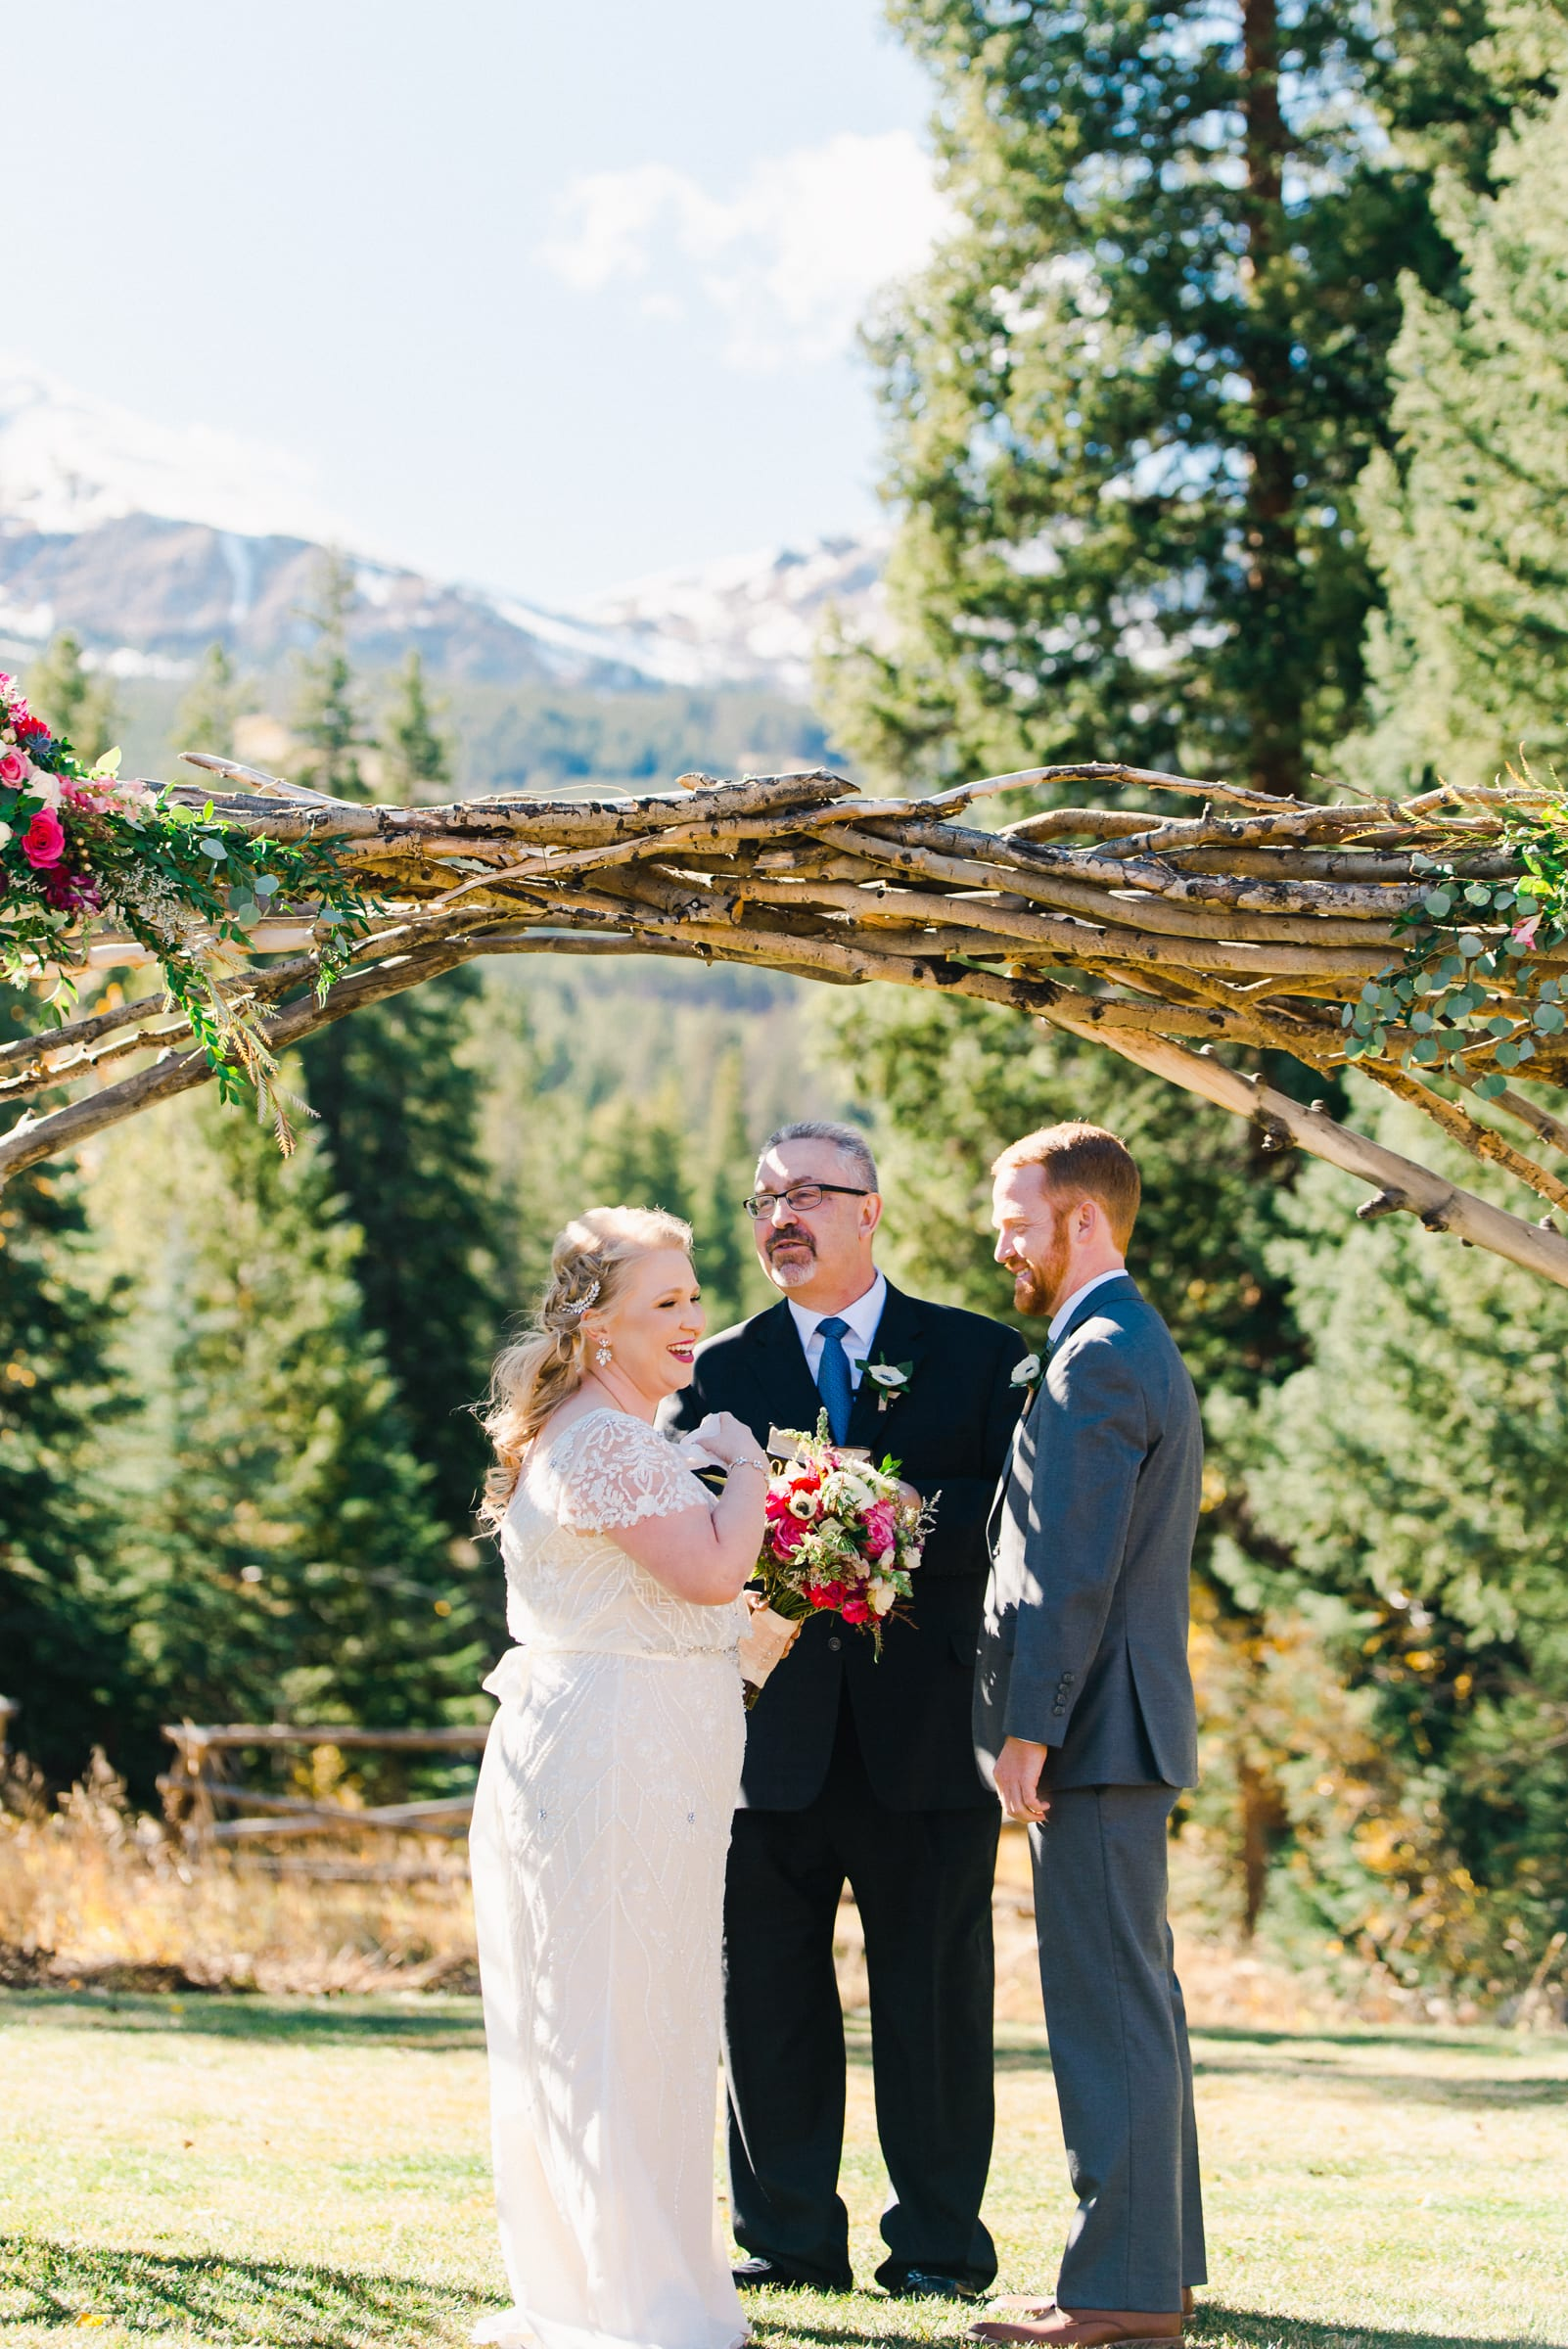 Fall Mountain Wedding Ceremony | Josie V Photography